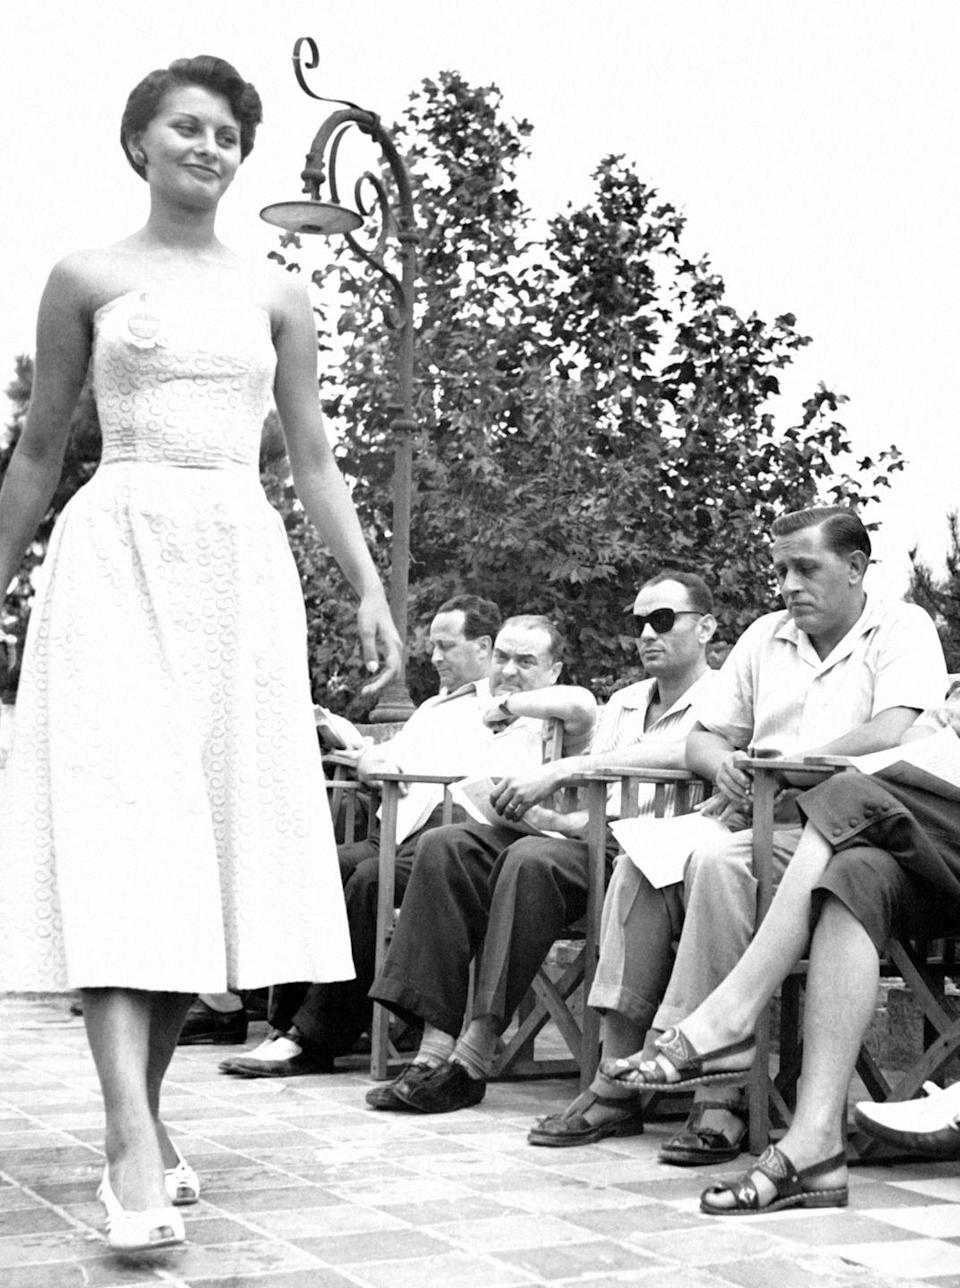 <p>The Italian actress competed in Miss Italy in 1950 at 15 years old and won the title of Miss Elegance during the competition.</p>